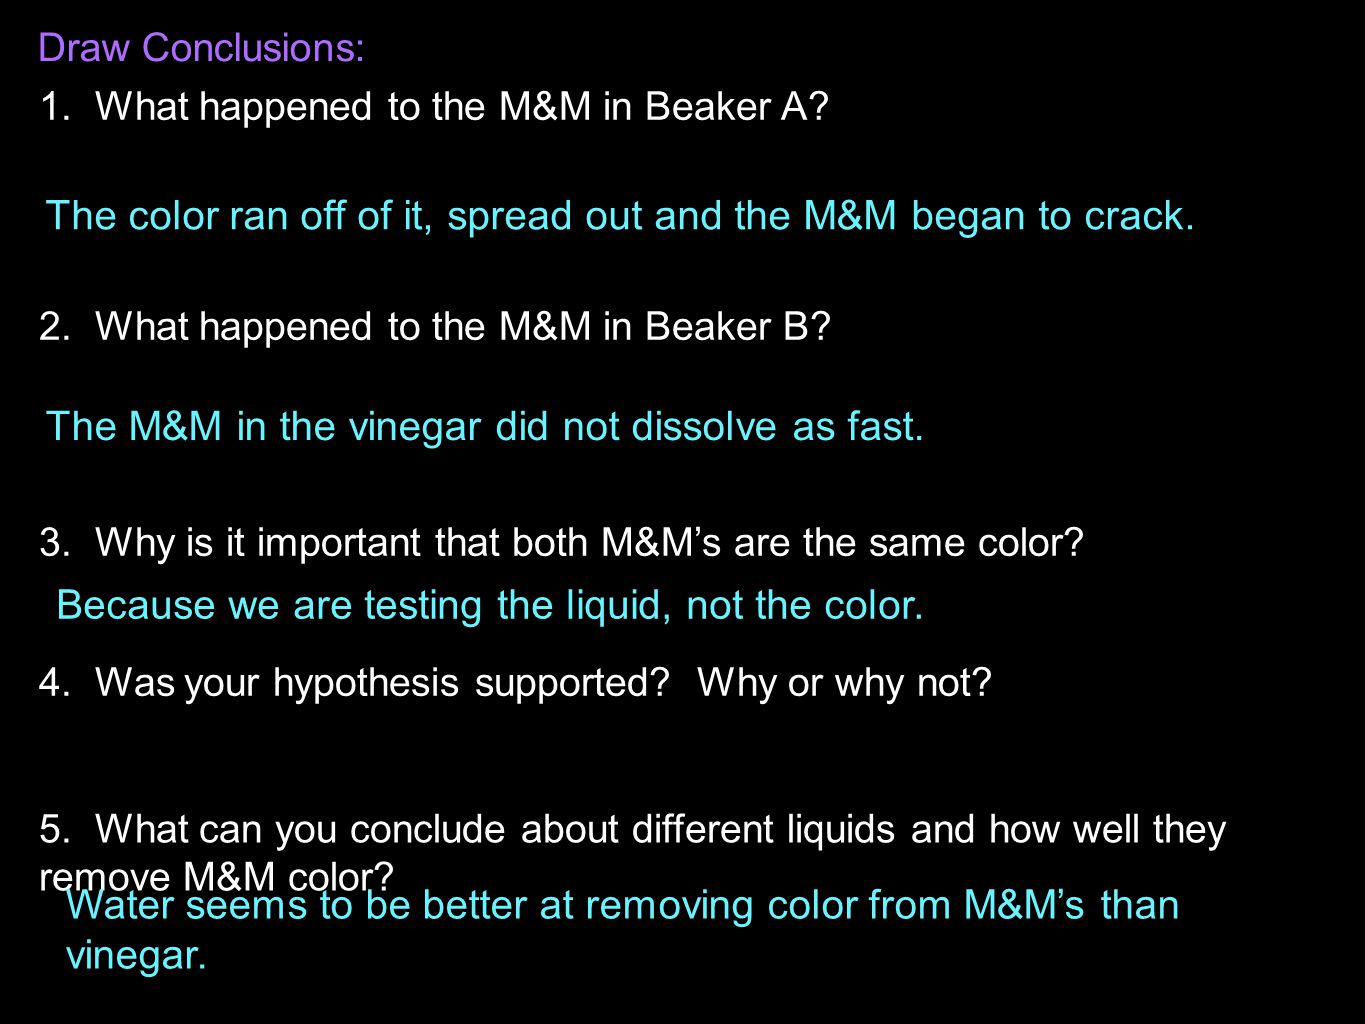 The color ran off of it, spread out and the M&M began to crack.